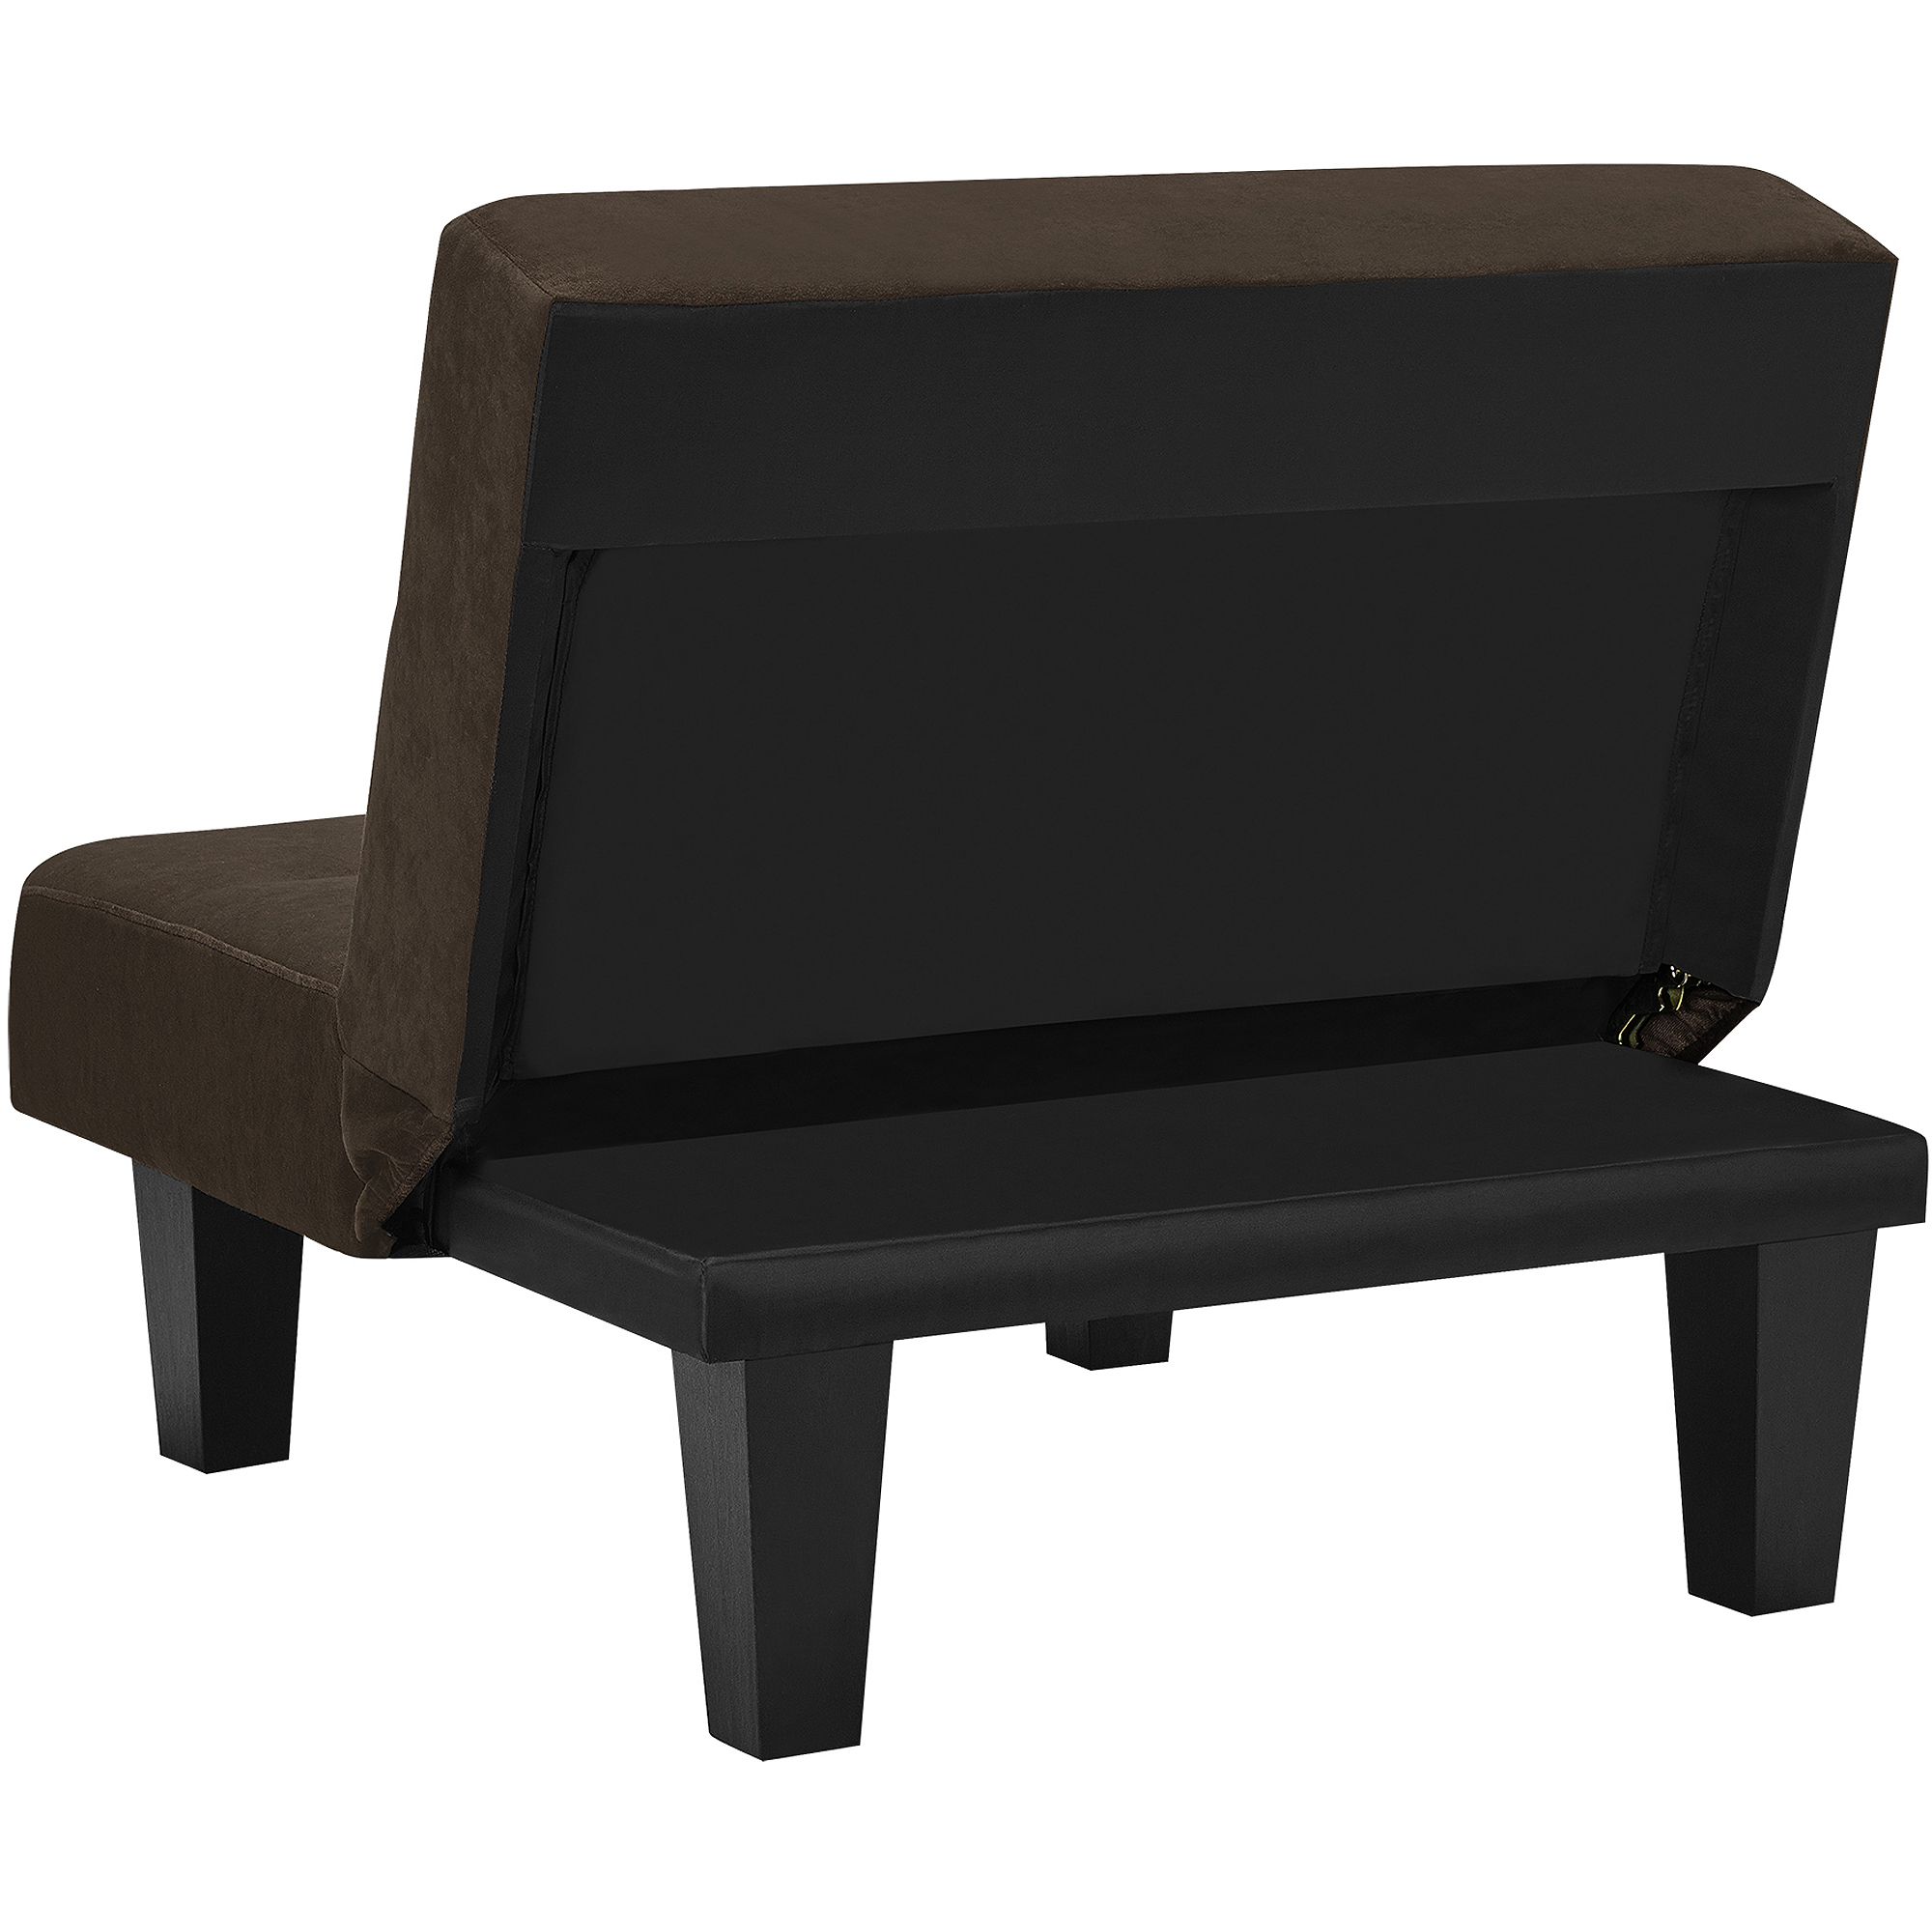 Kebo Chair and Ottoman Multiple Colors Walmart